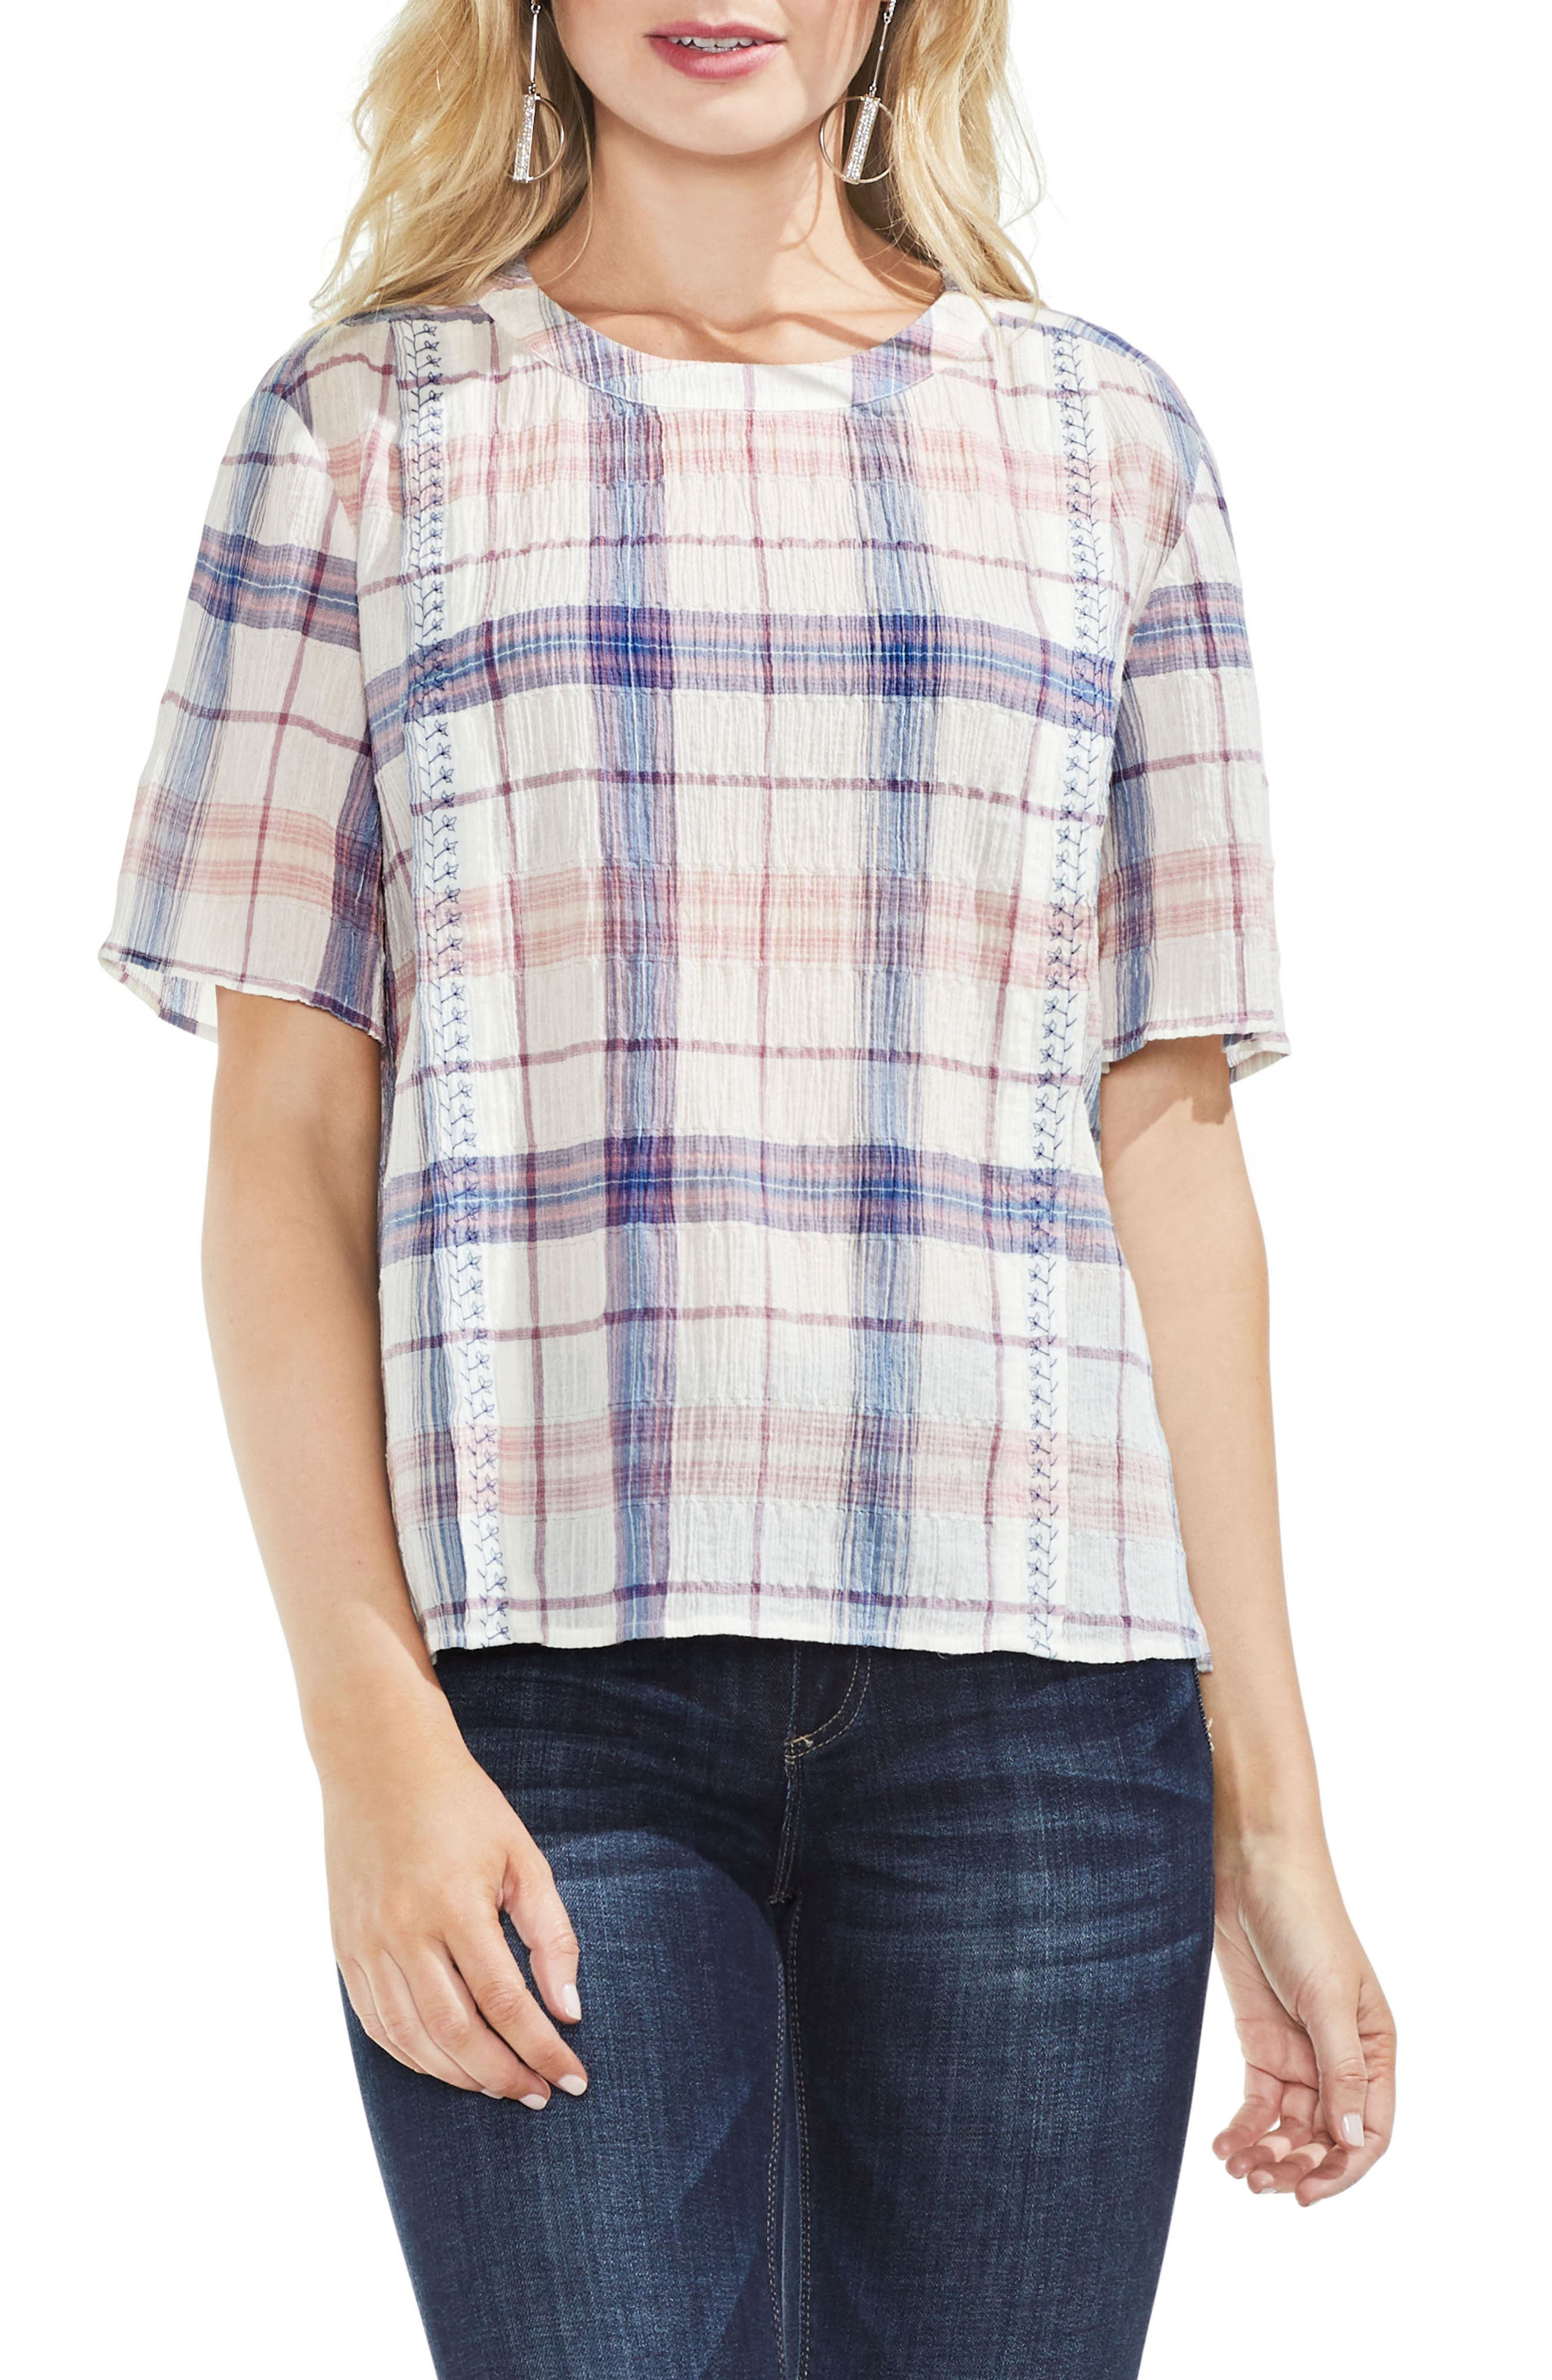 Vince Camuto Pavillion Plaid Embroidered Top